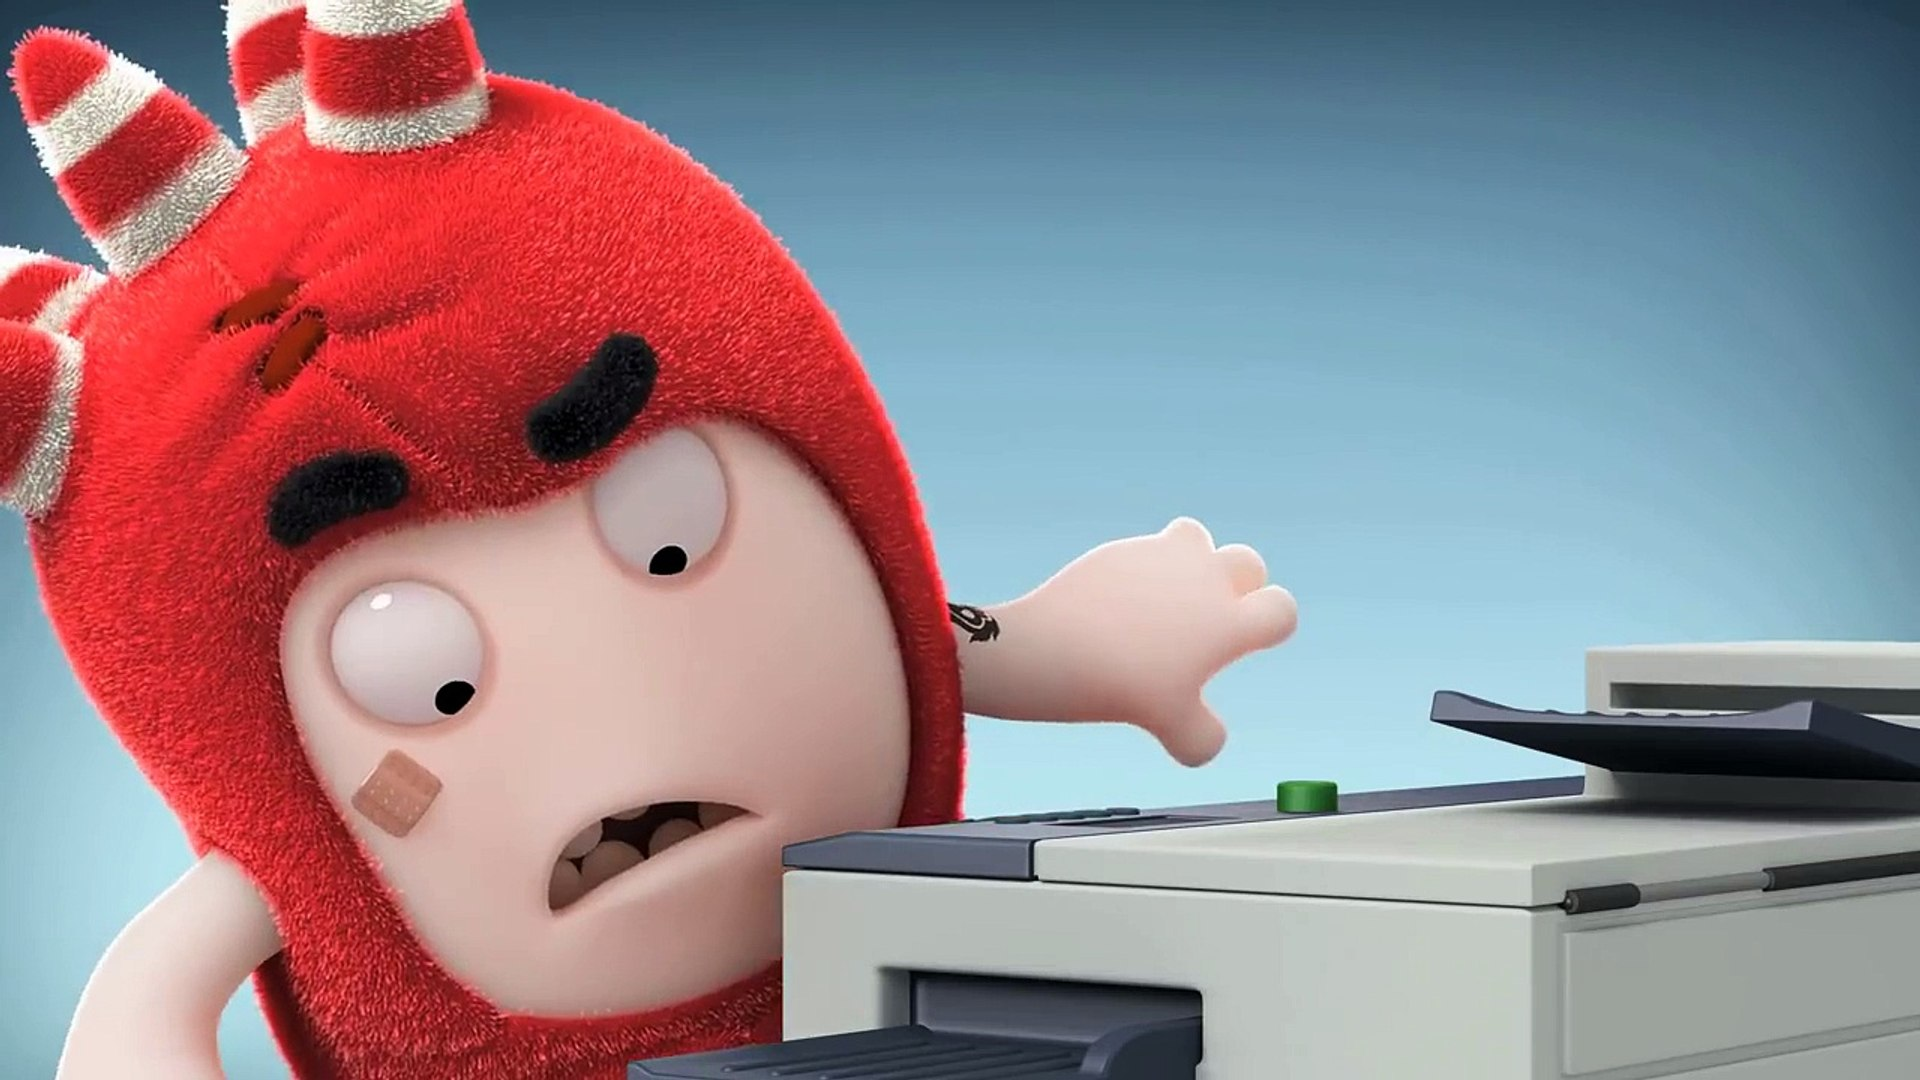 Oddbods _ Fuse and the Photocopier Watch tv series movies 2017 Watch tv series movies 2017